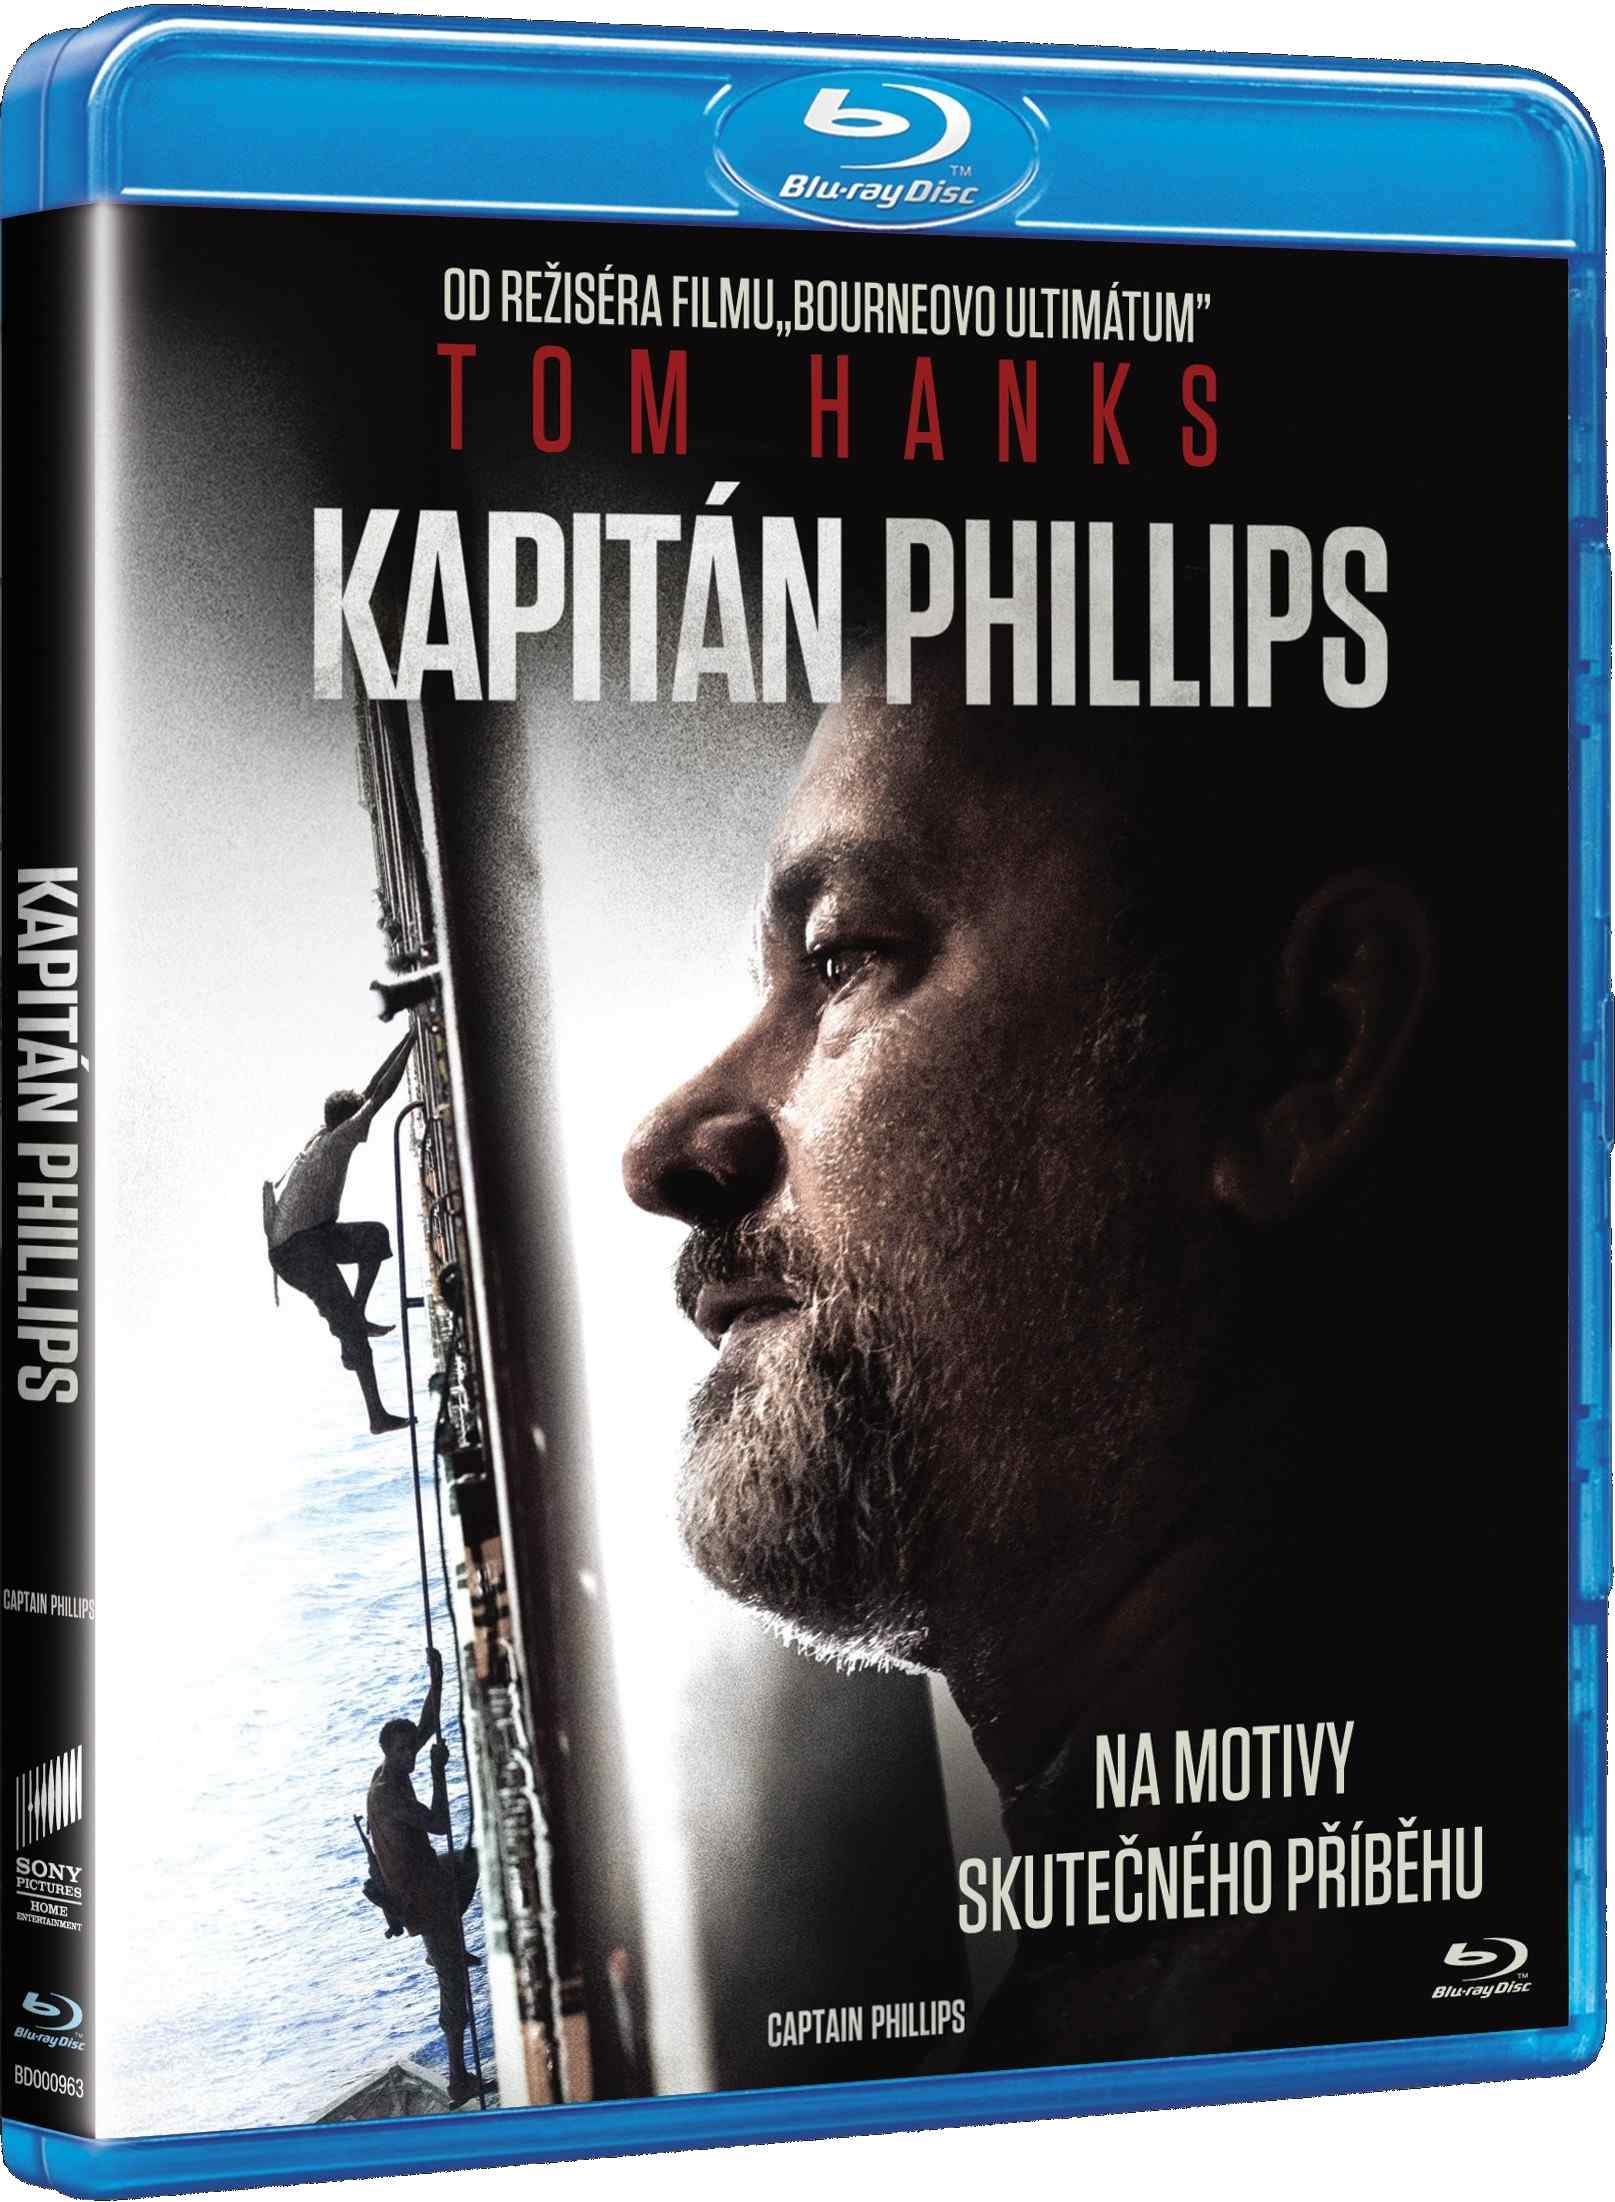 KAPITÁN PHILLIPS - Blu-ray